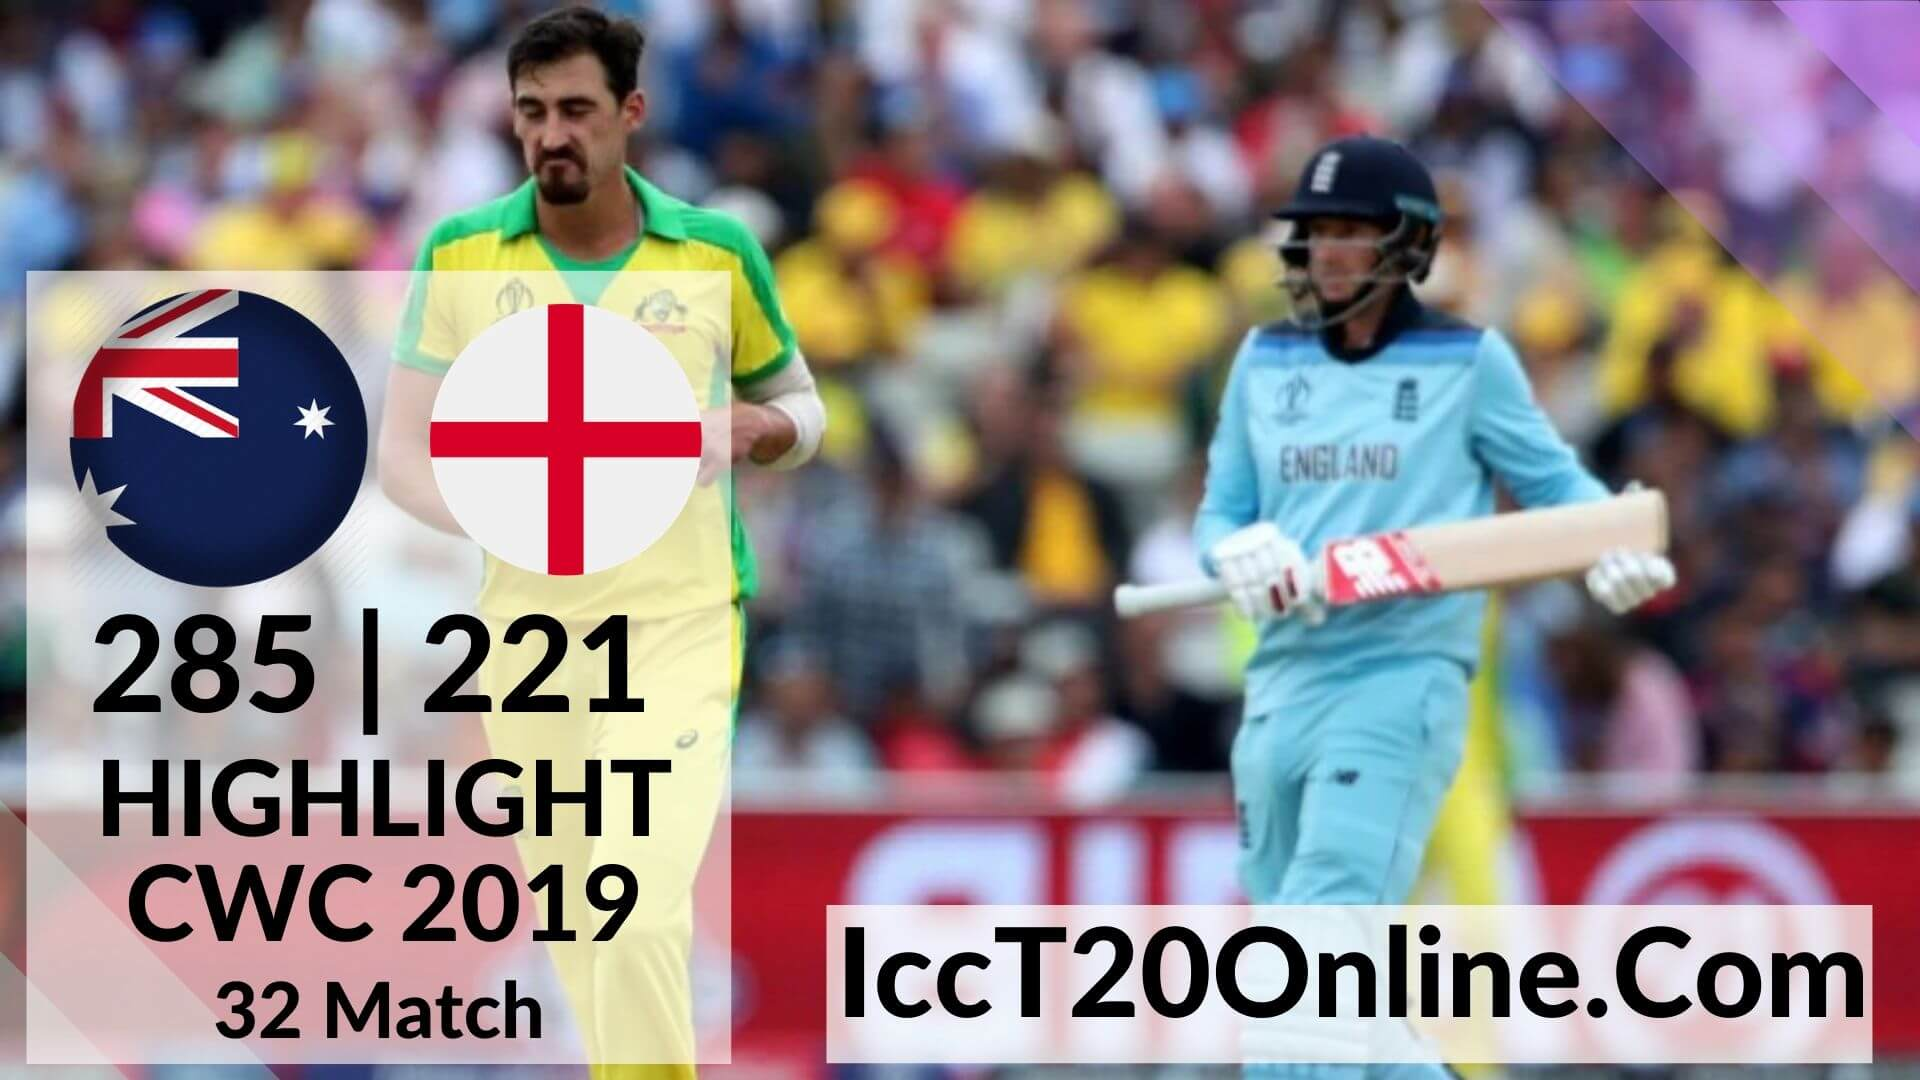 Australia Vs England Highlights CWC 2019